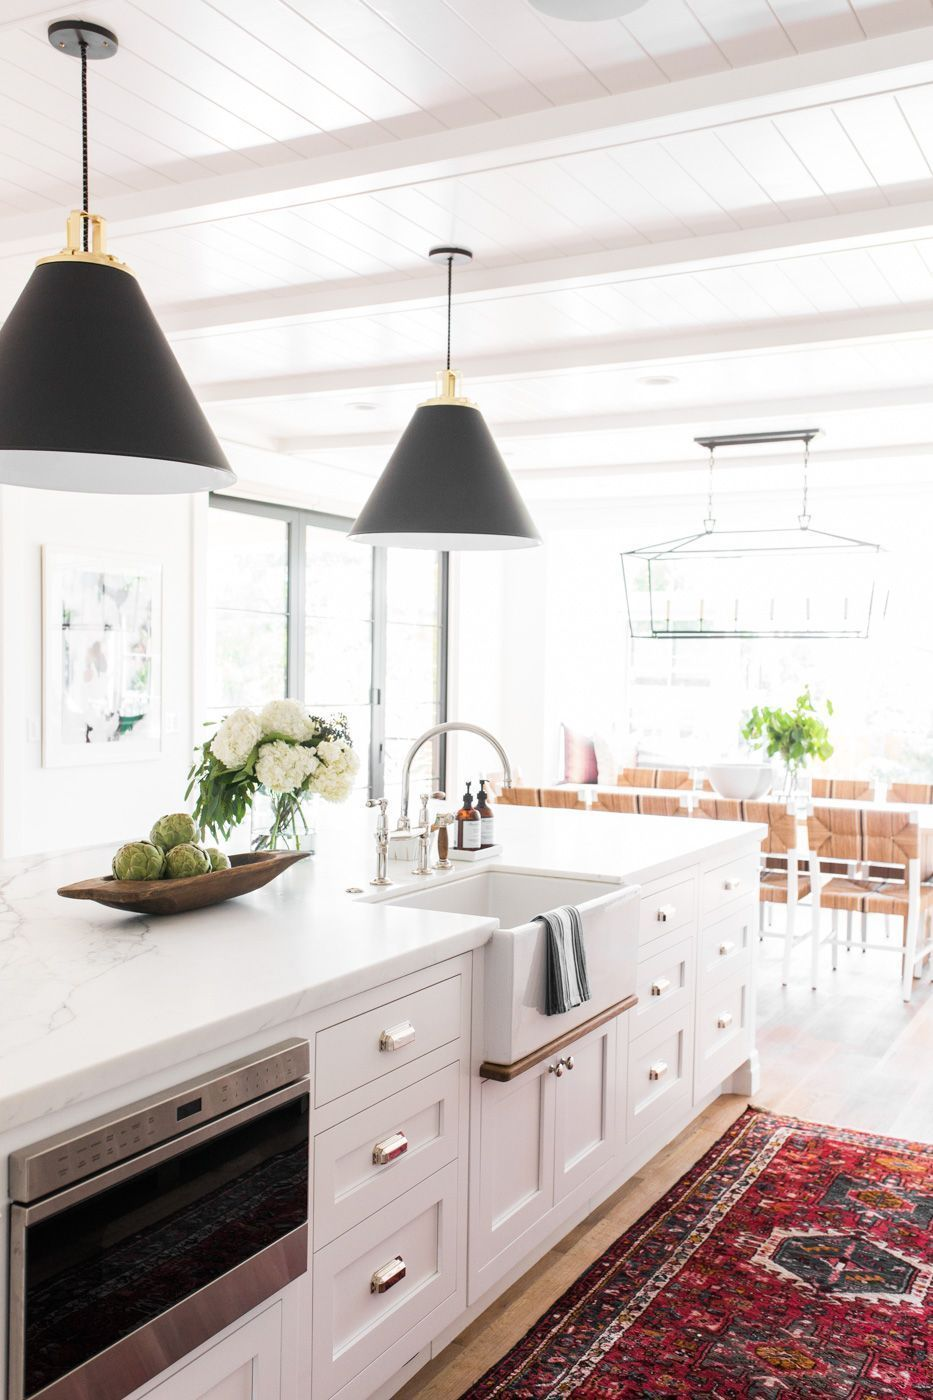 Pin by whyhomebitly on furniture kitchen Kitchen style